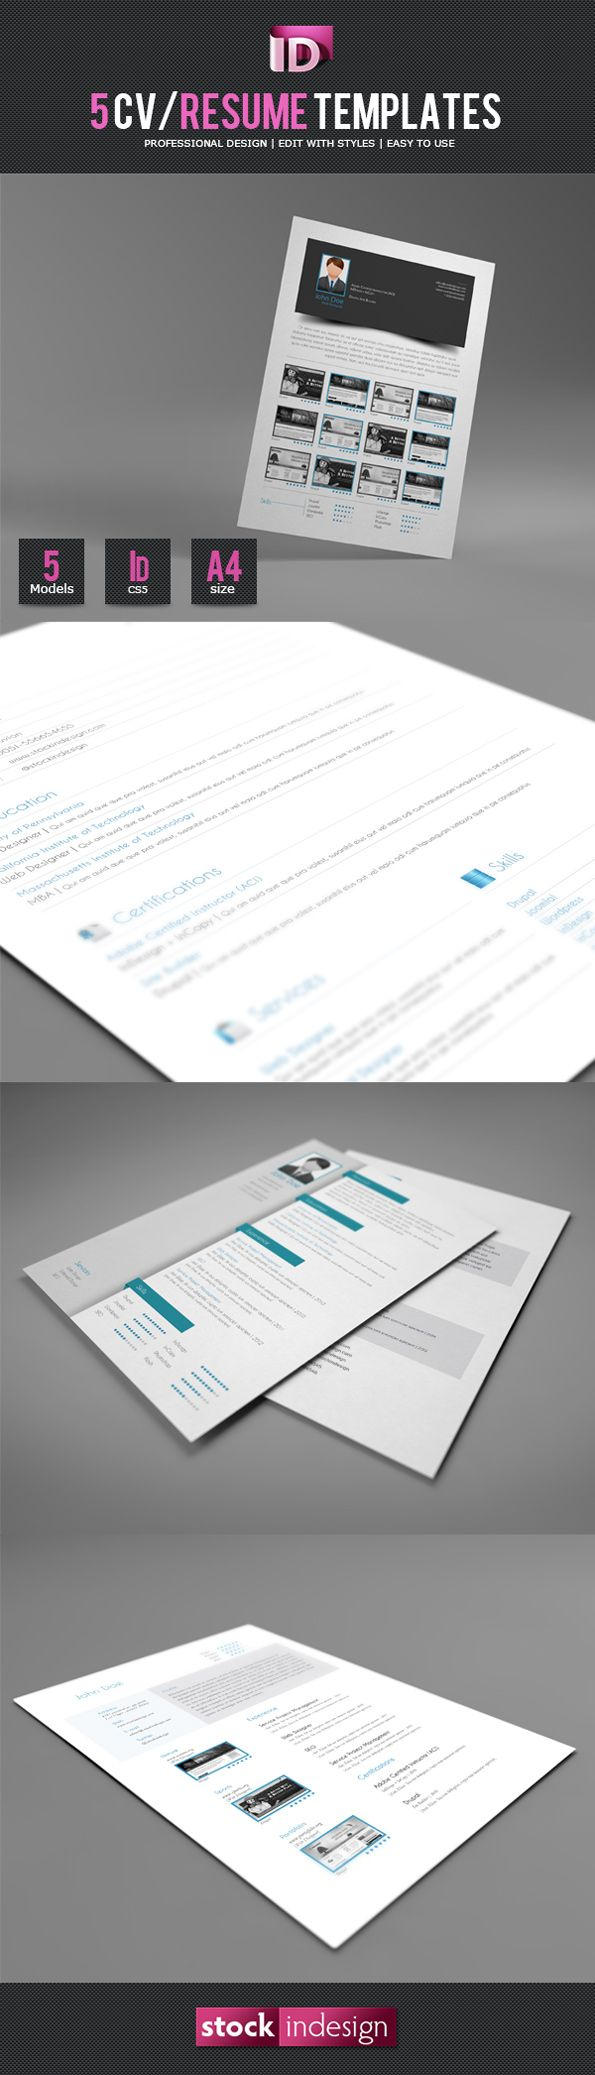 Best Indesign Resume Templates Images On